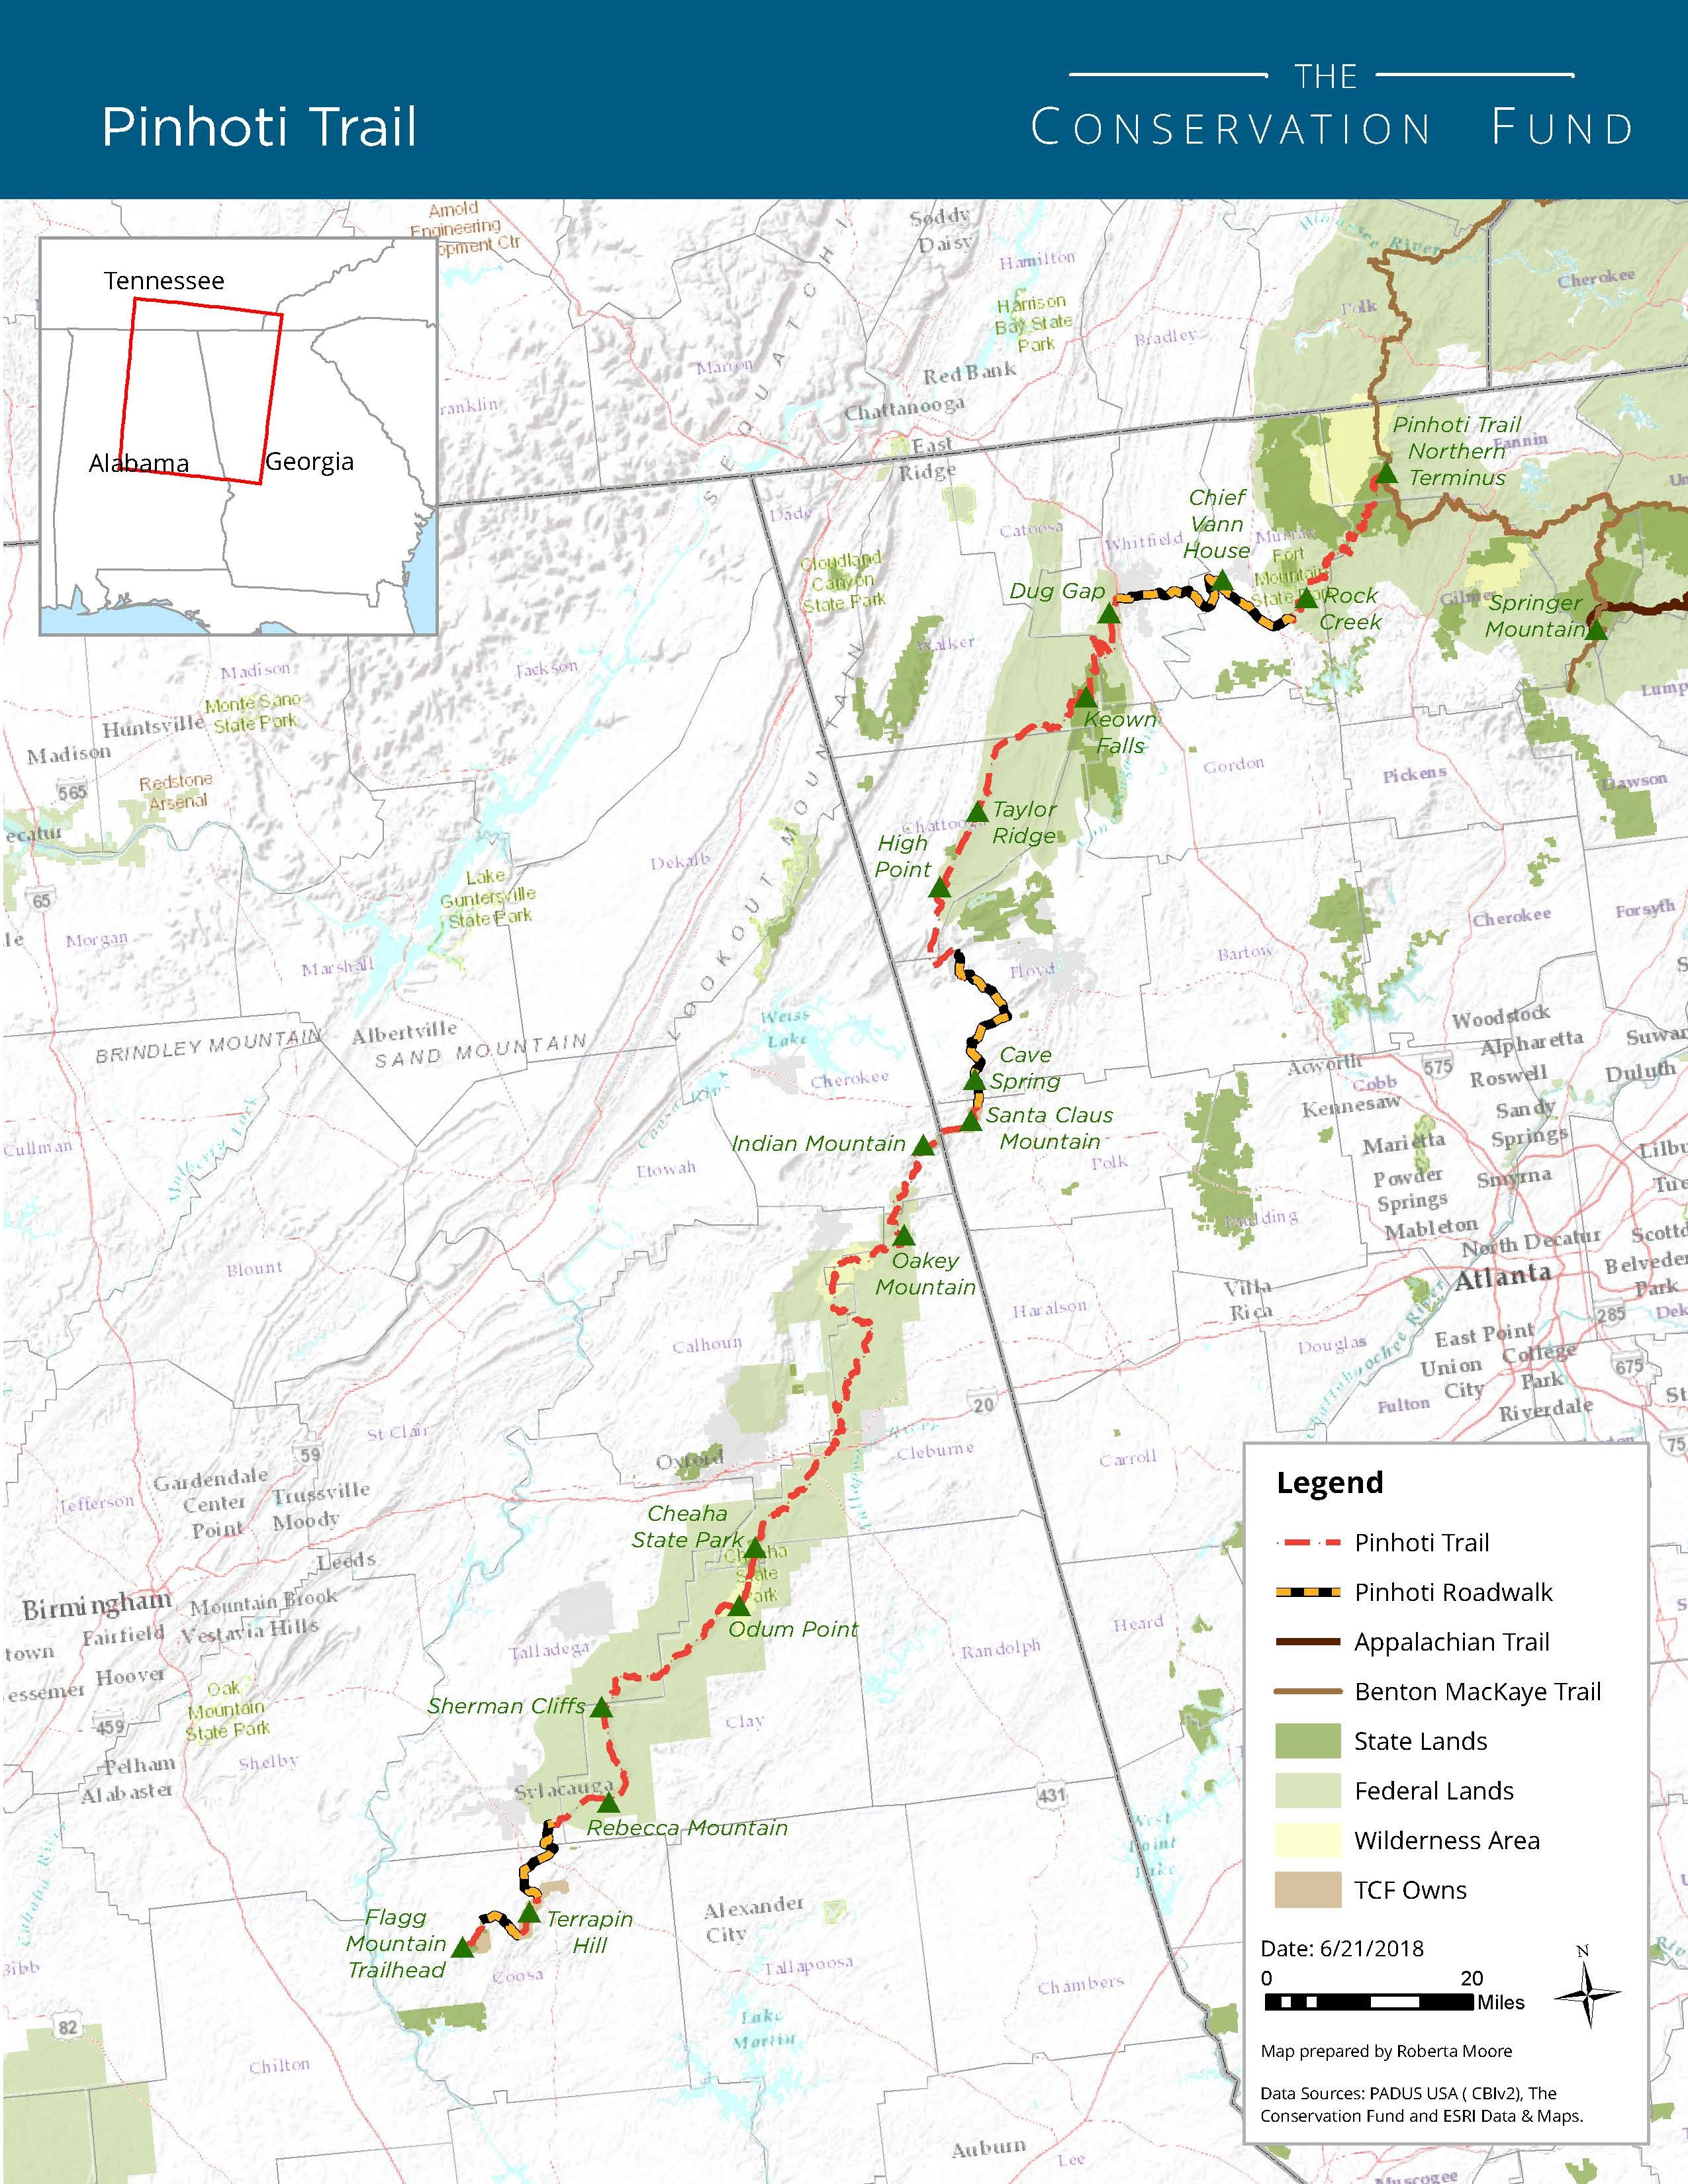 Connecting Pinhoti And Appalachian Trails | The Conservation ...